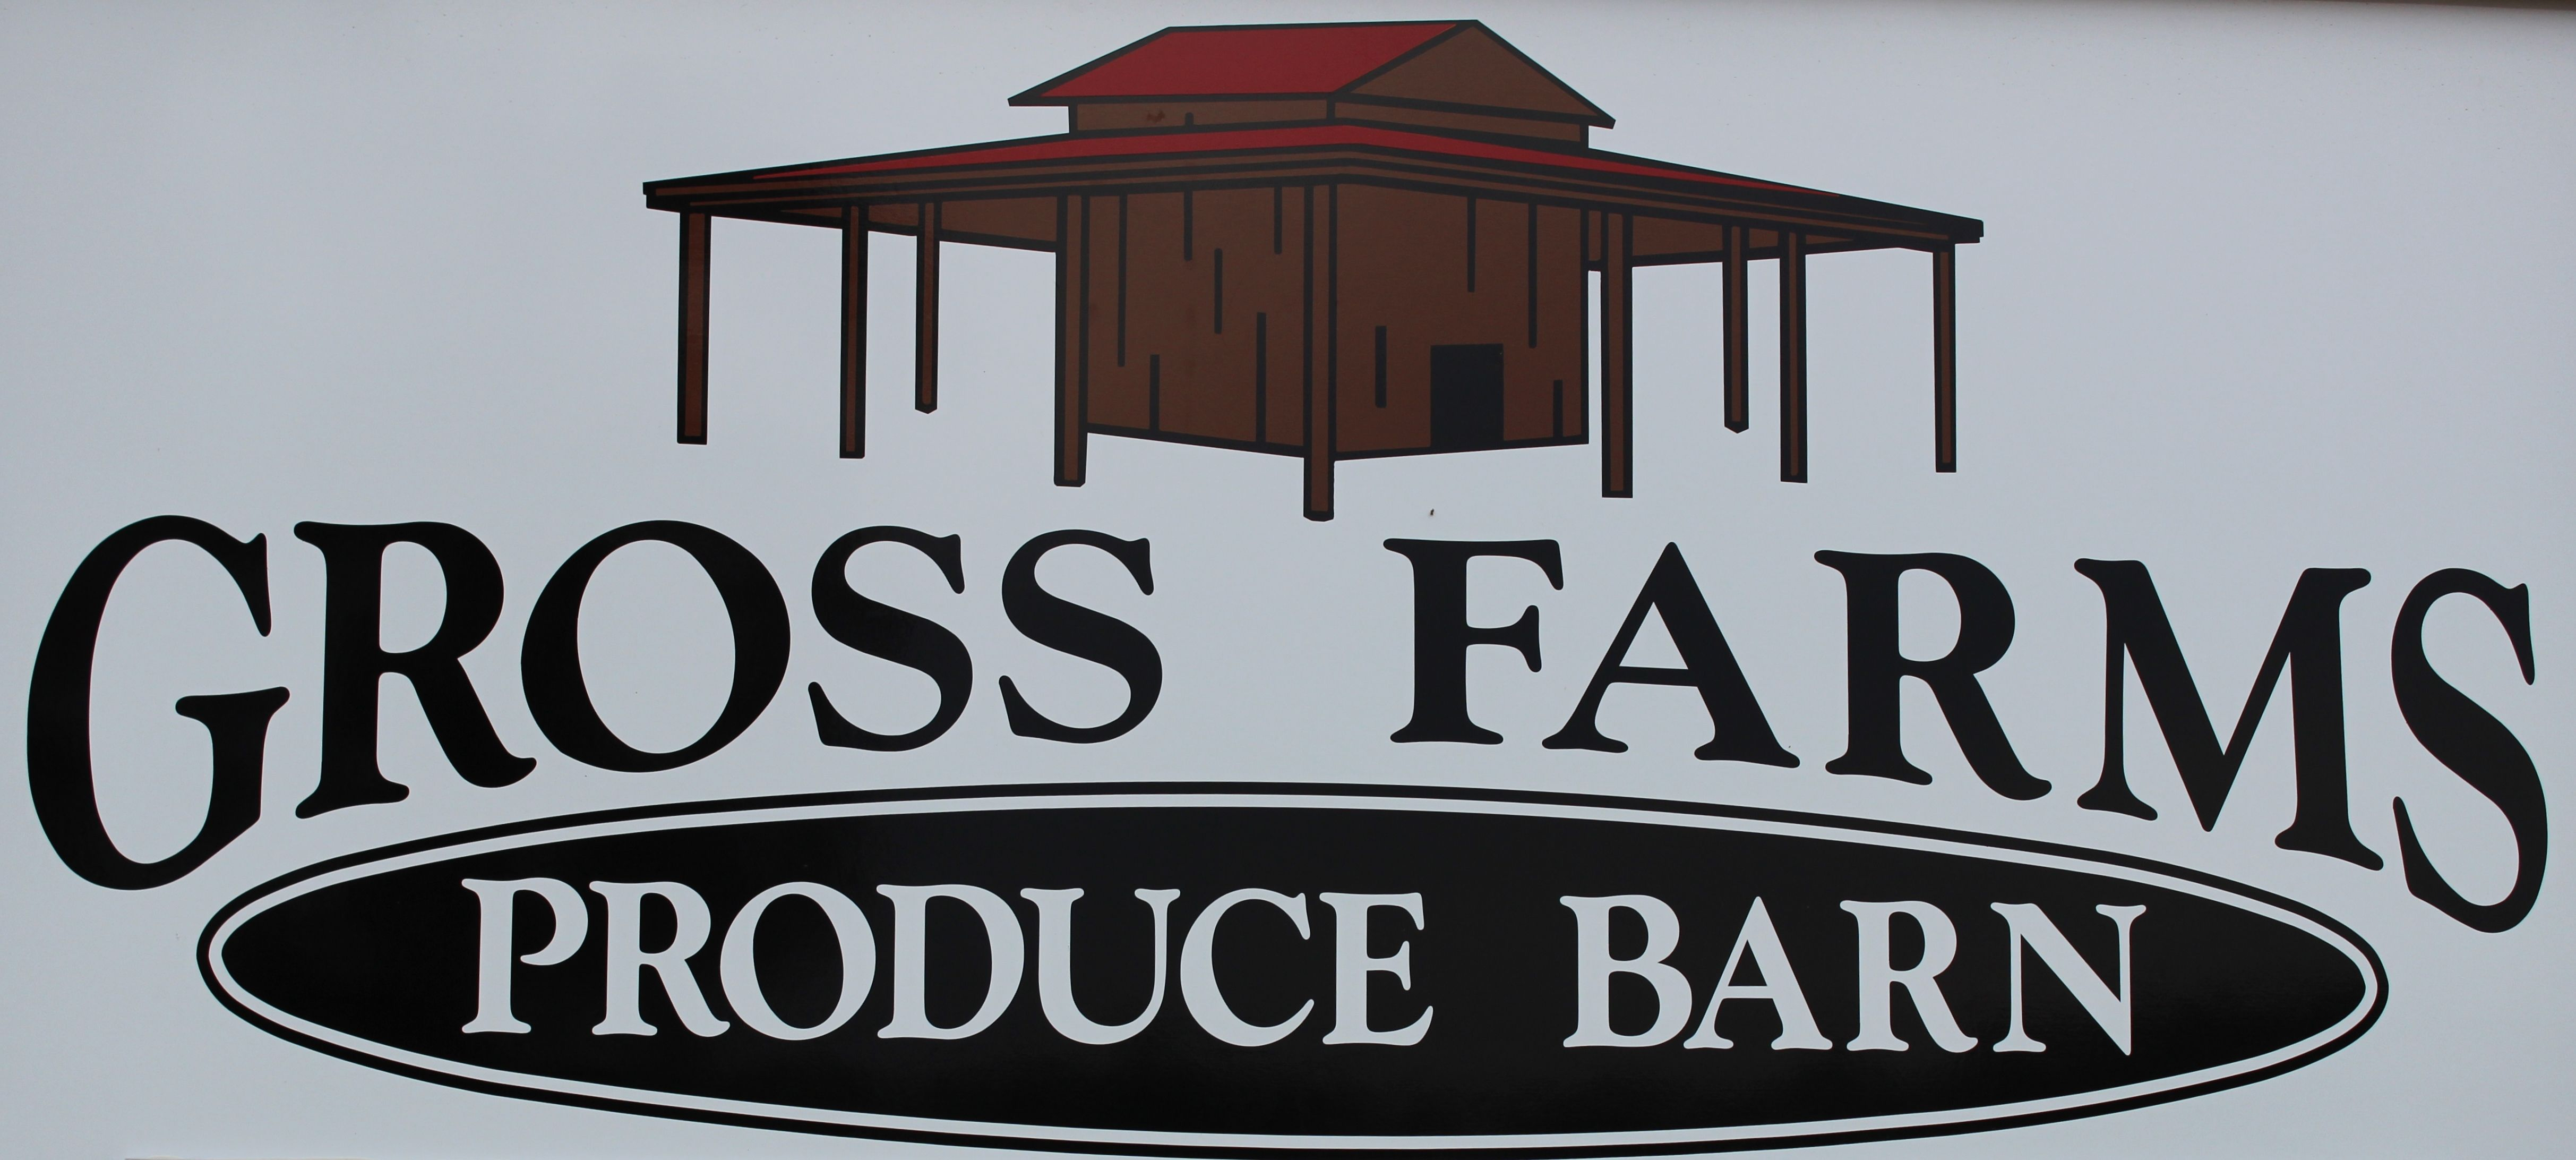 Gross Farms Produce Barn is located at 1606 Pickett Road